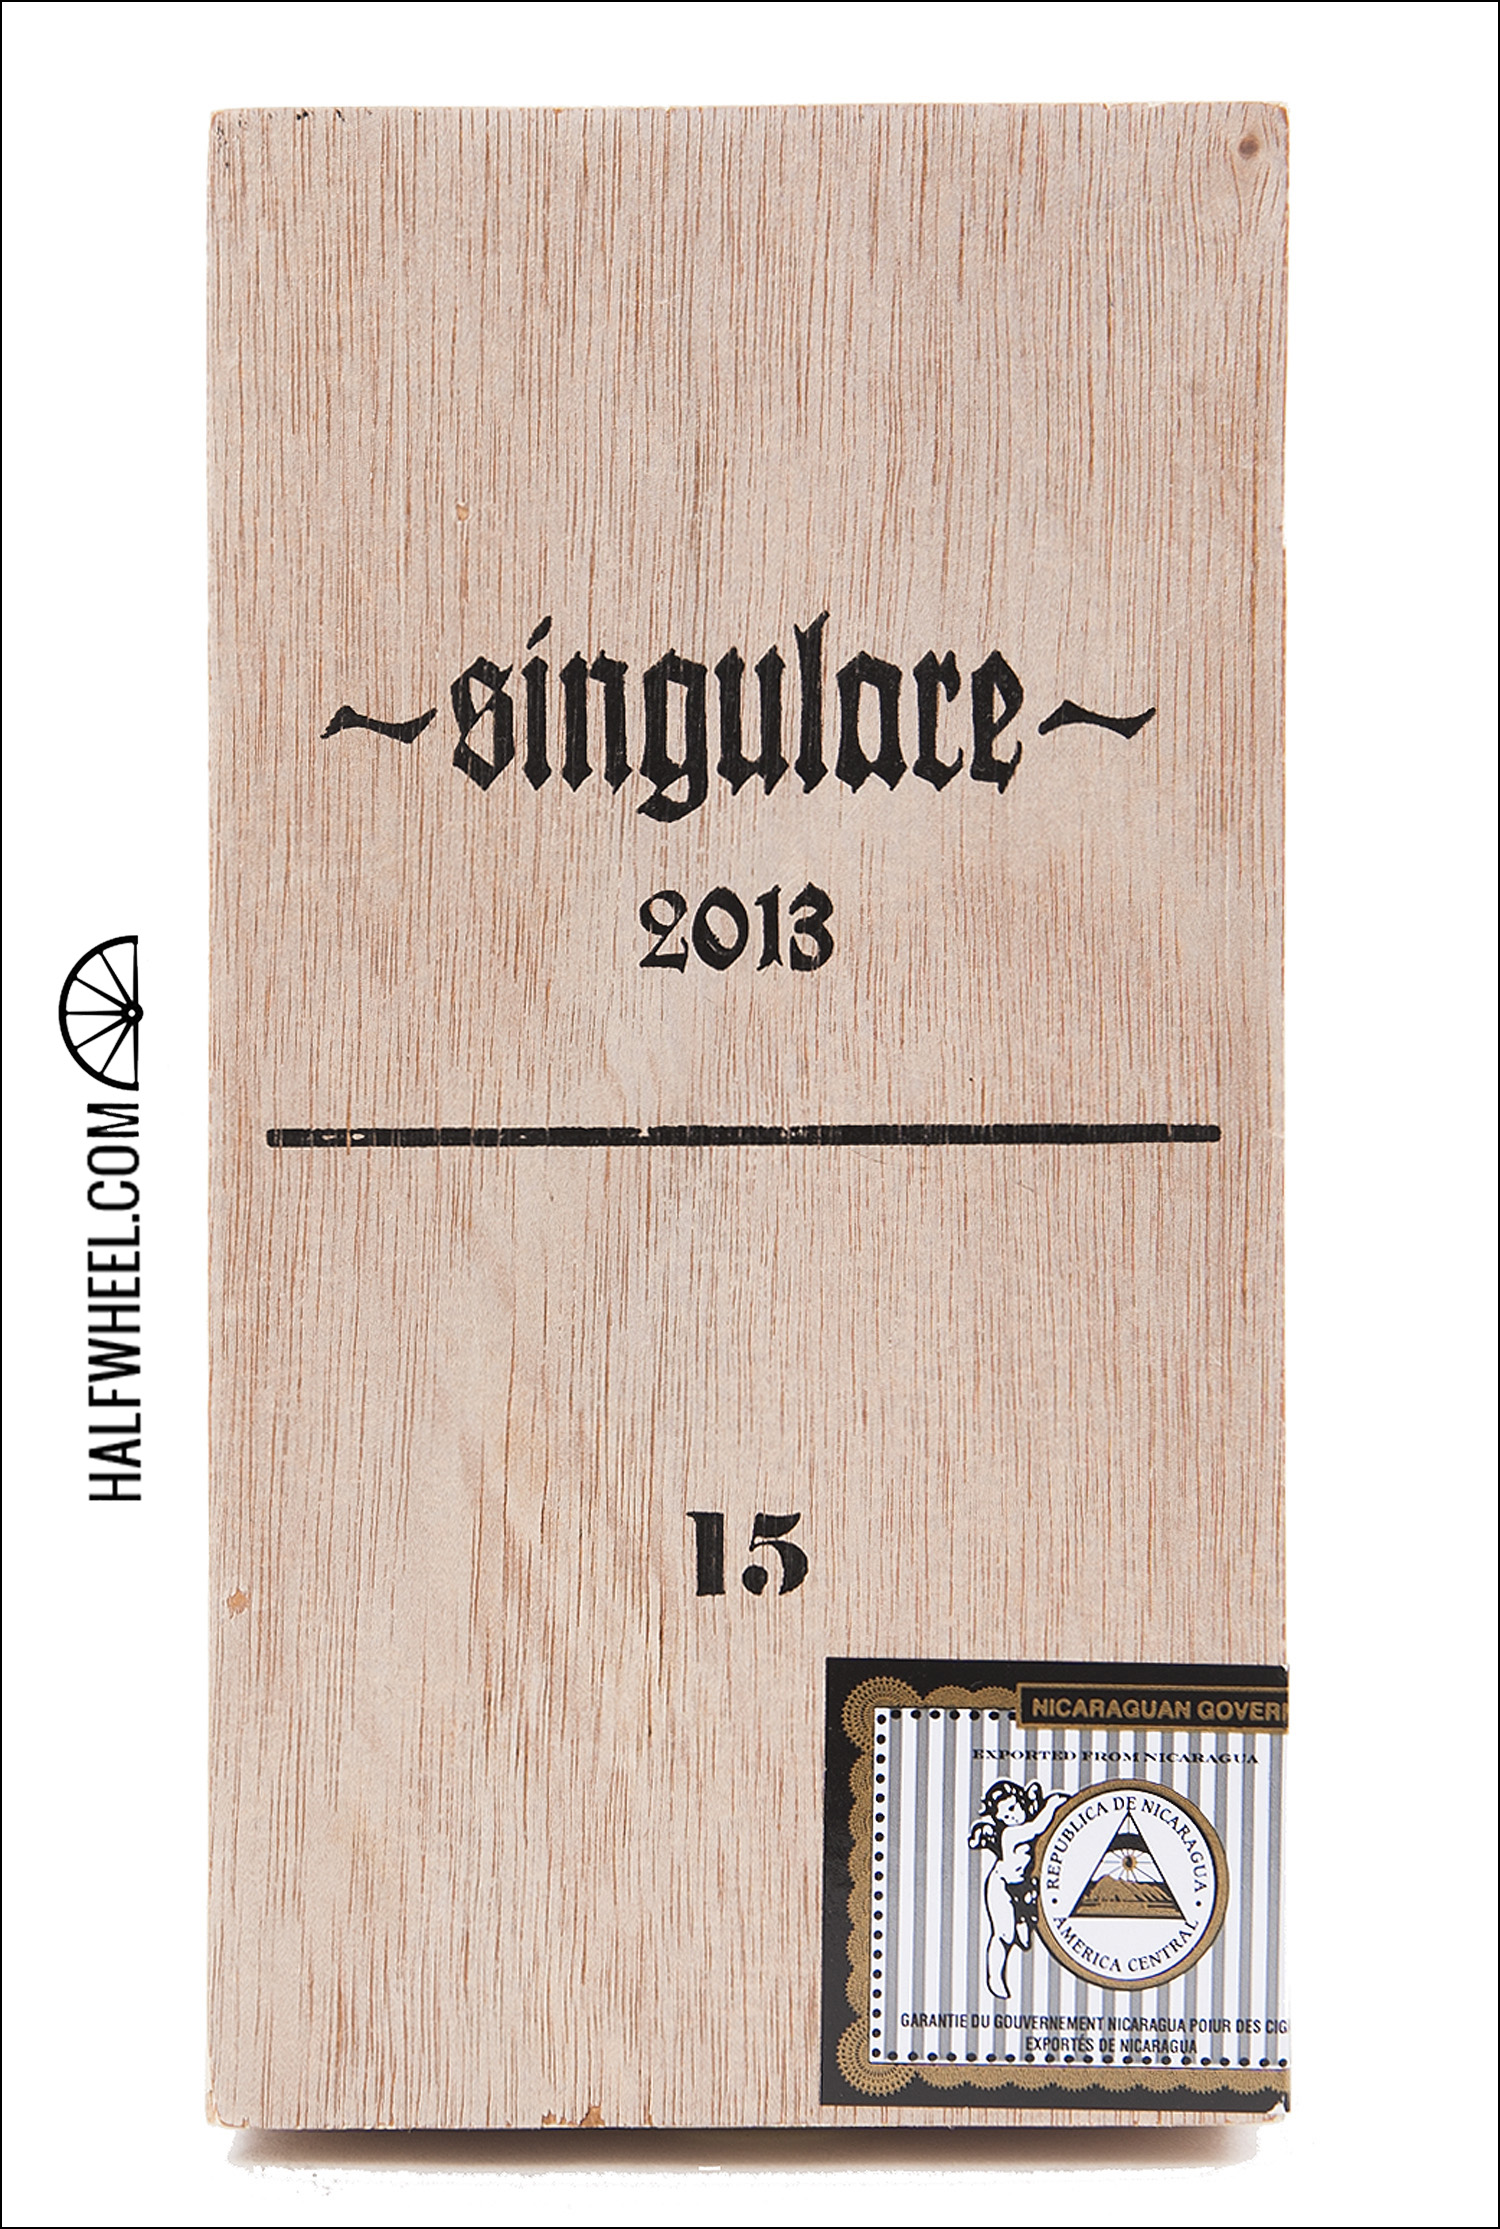 Illusione Singluare 2013 Rose Croix Box 1